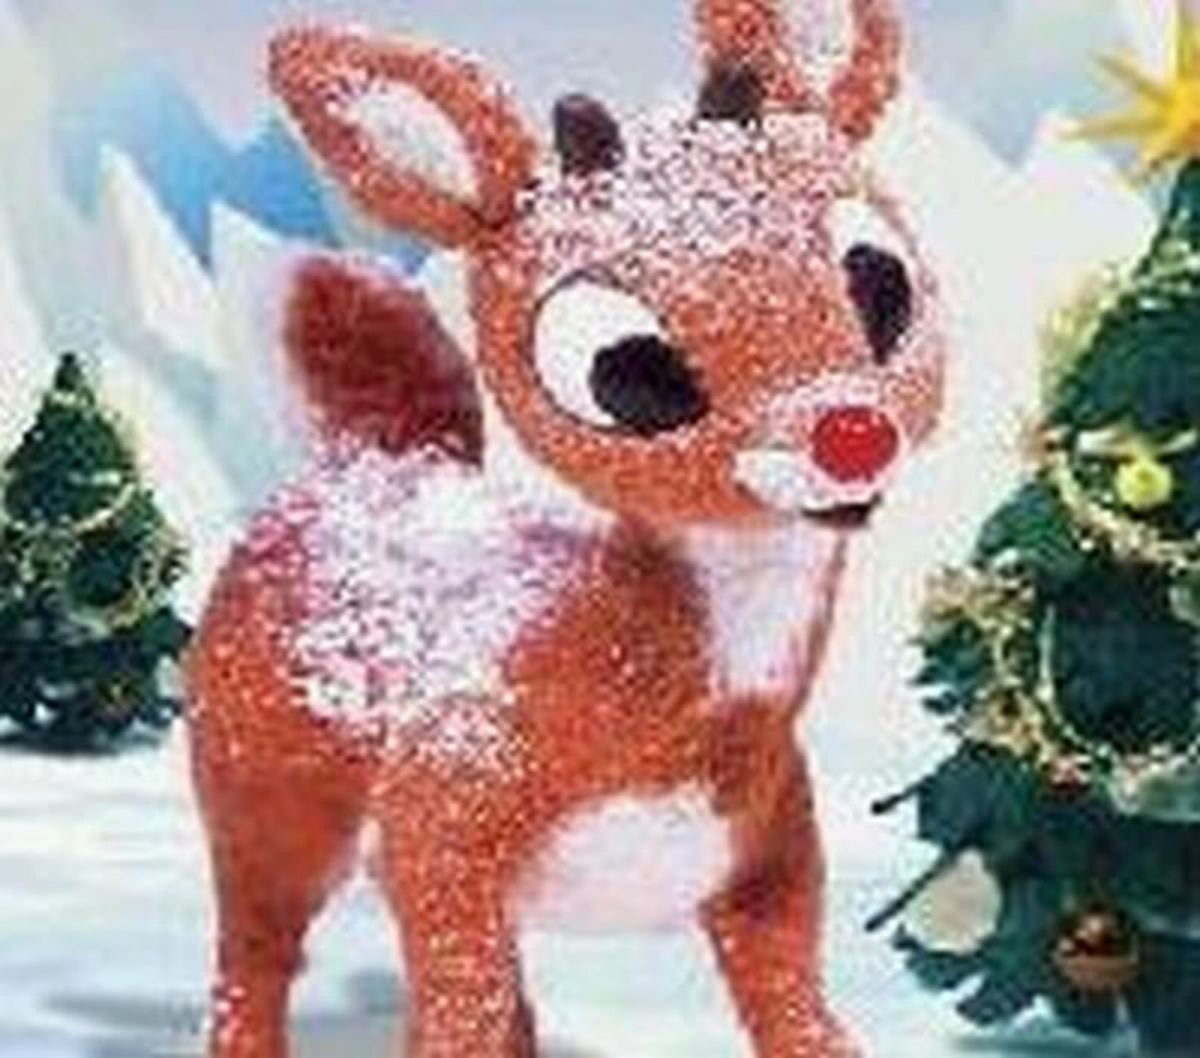 Rankin/Bass Retrospective - Part 5: Rudolph the Red-Nosed Reindeer